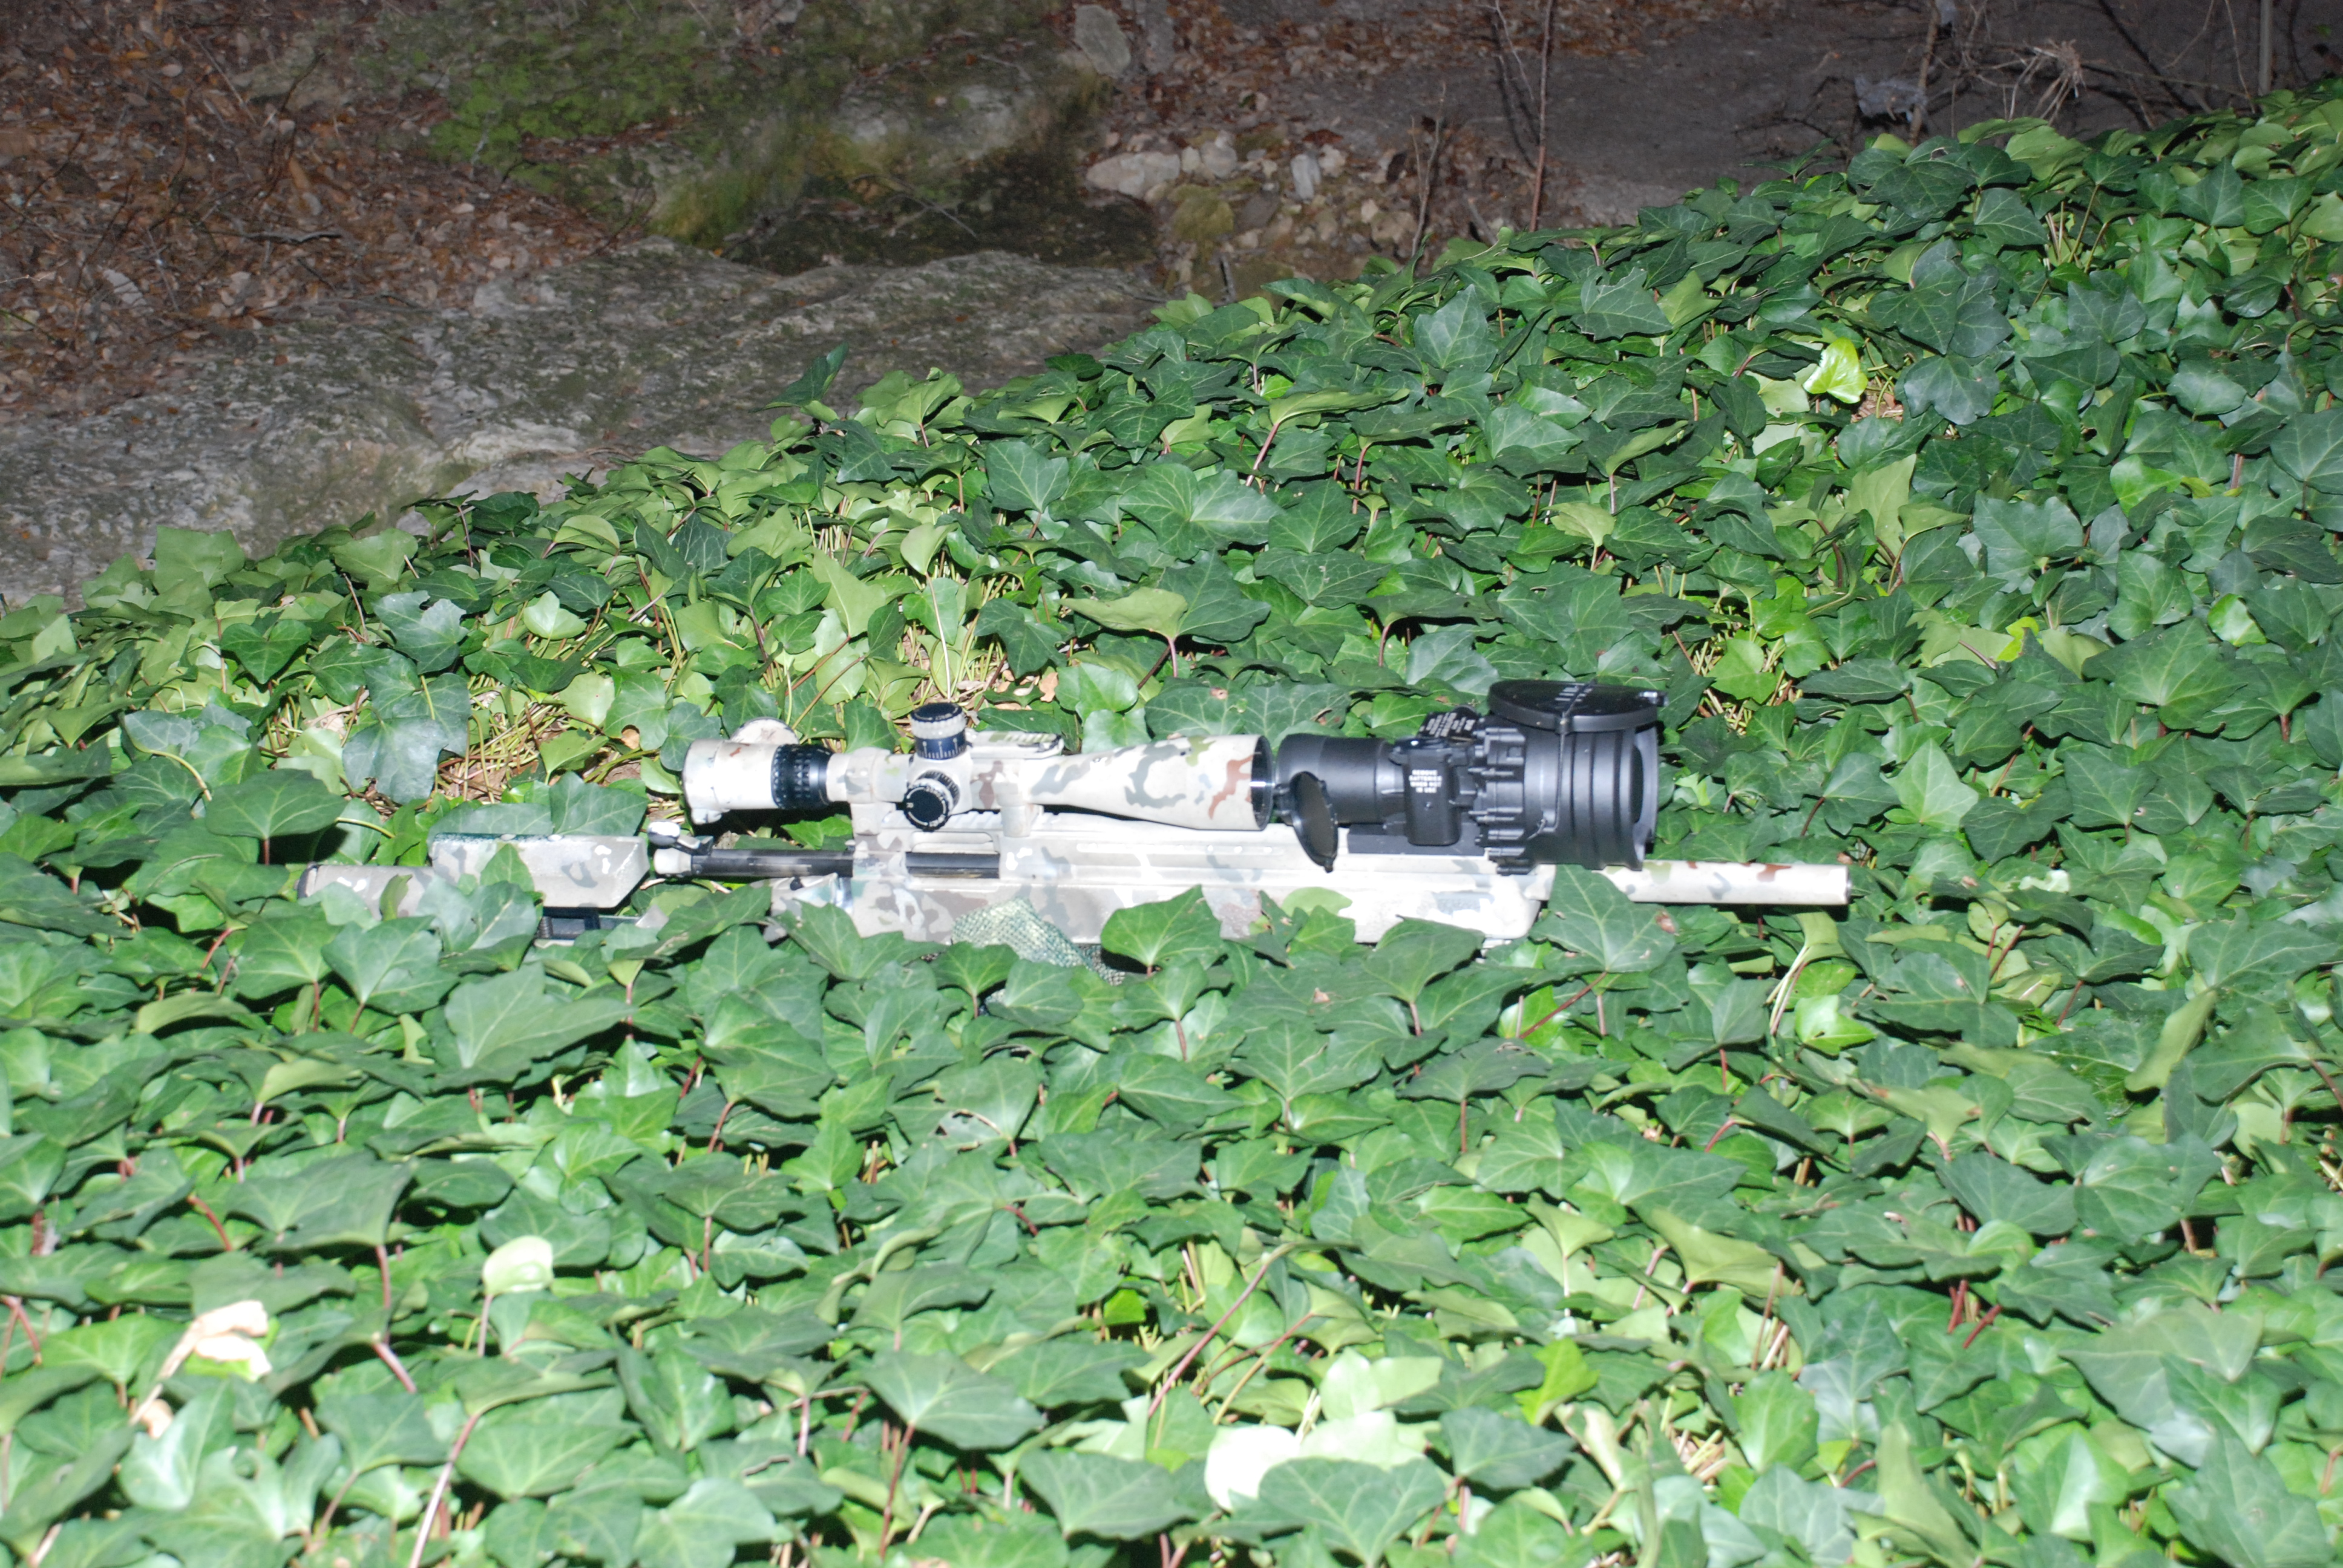 Weapon recovered from Sawyer Flache. (APD)